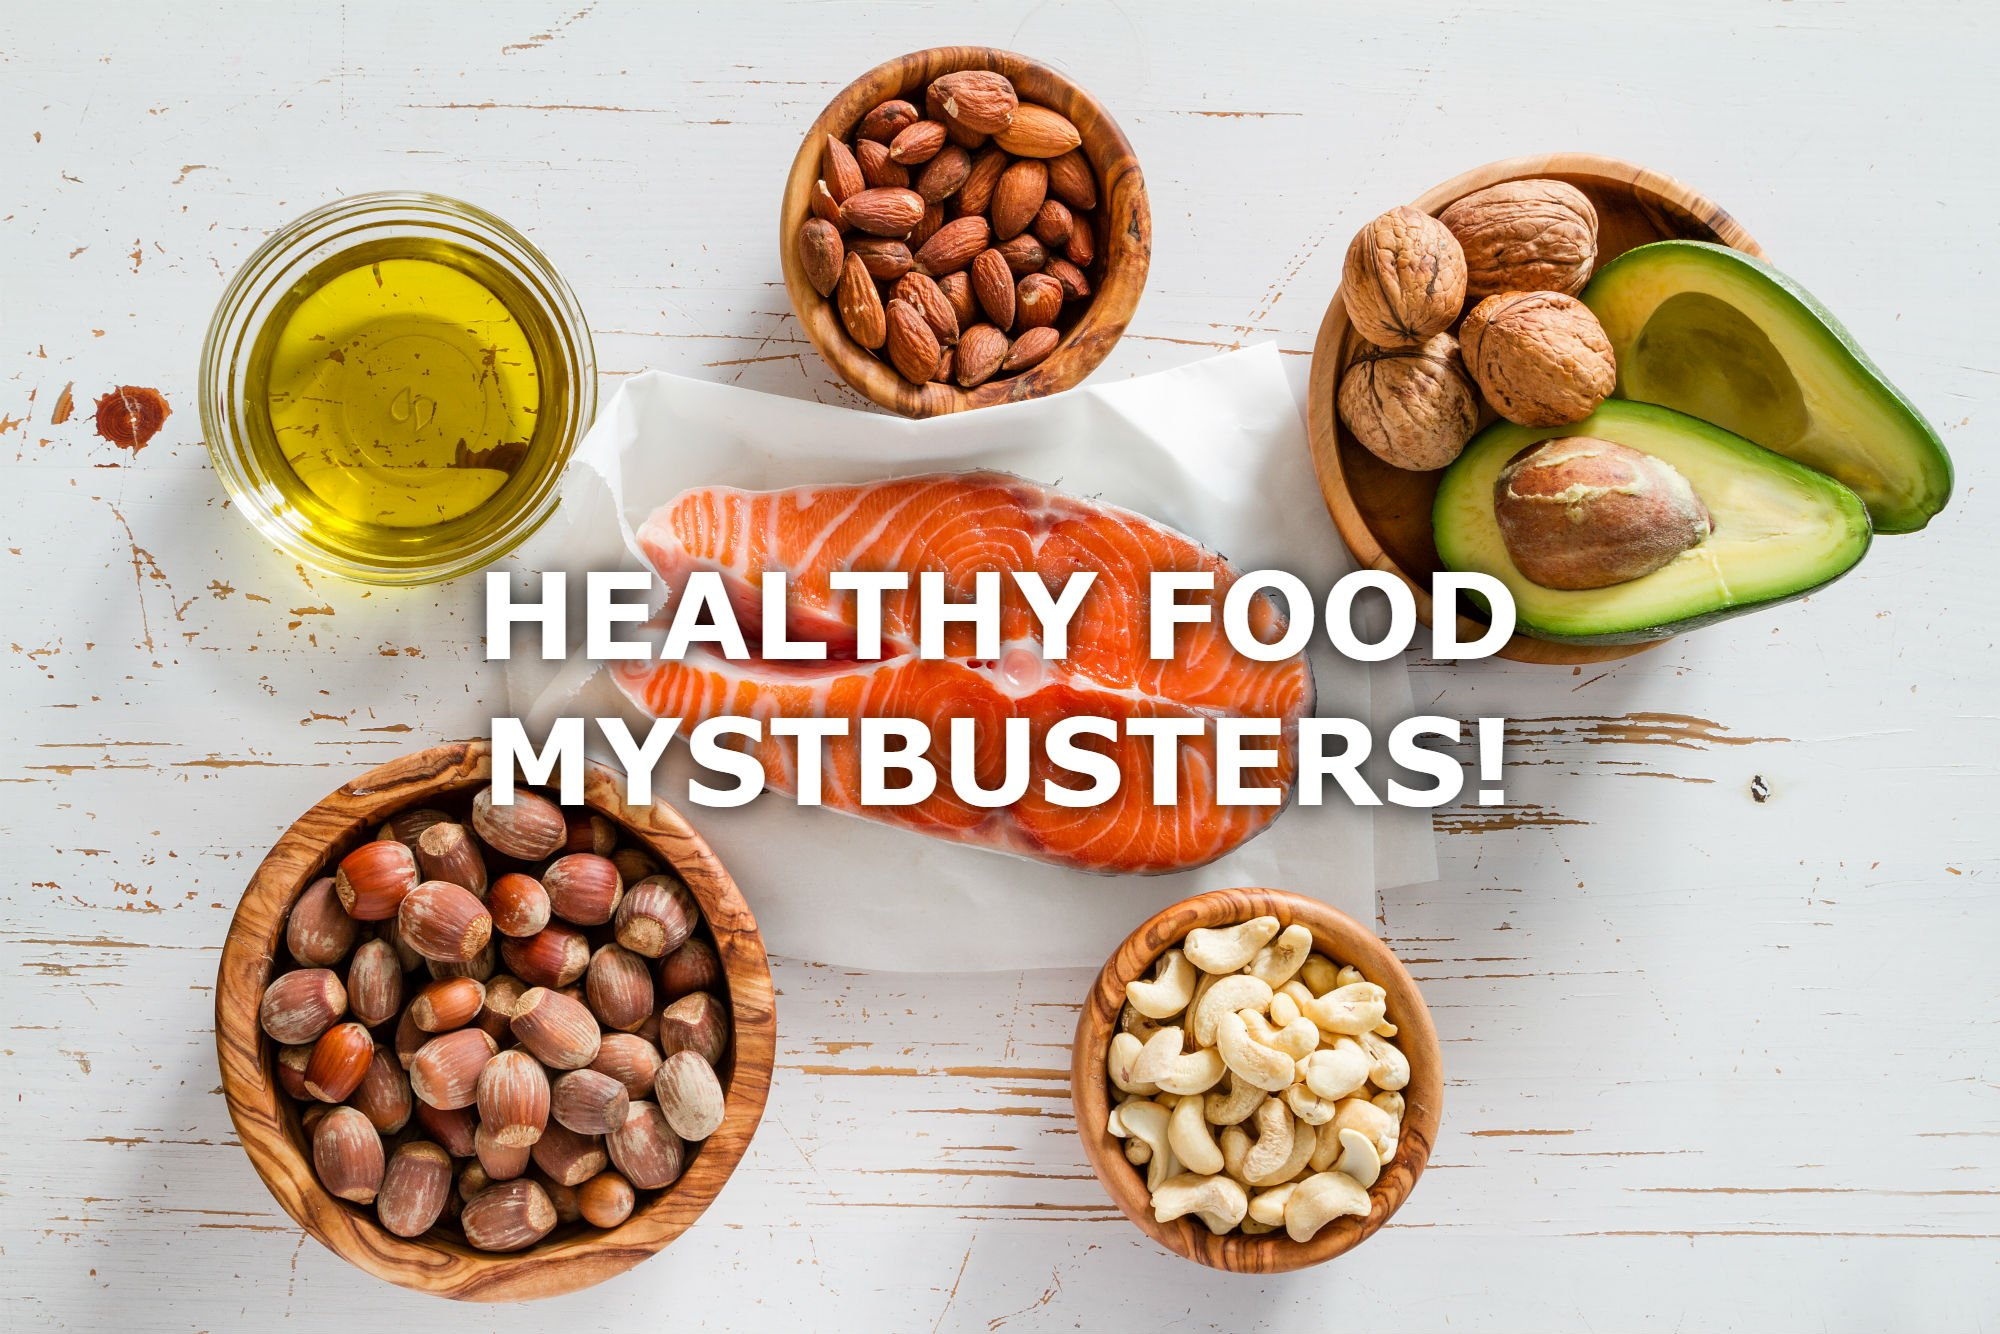 Healthy Food Mythbusters